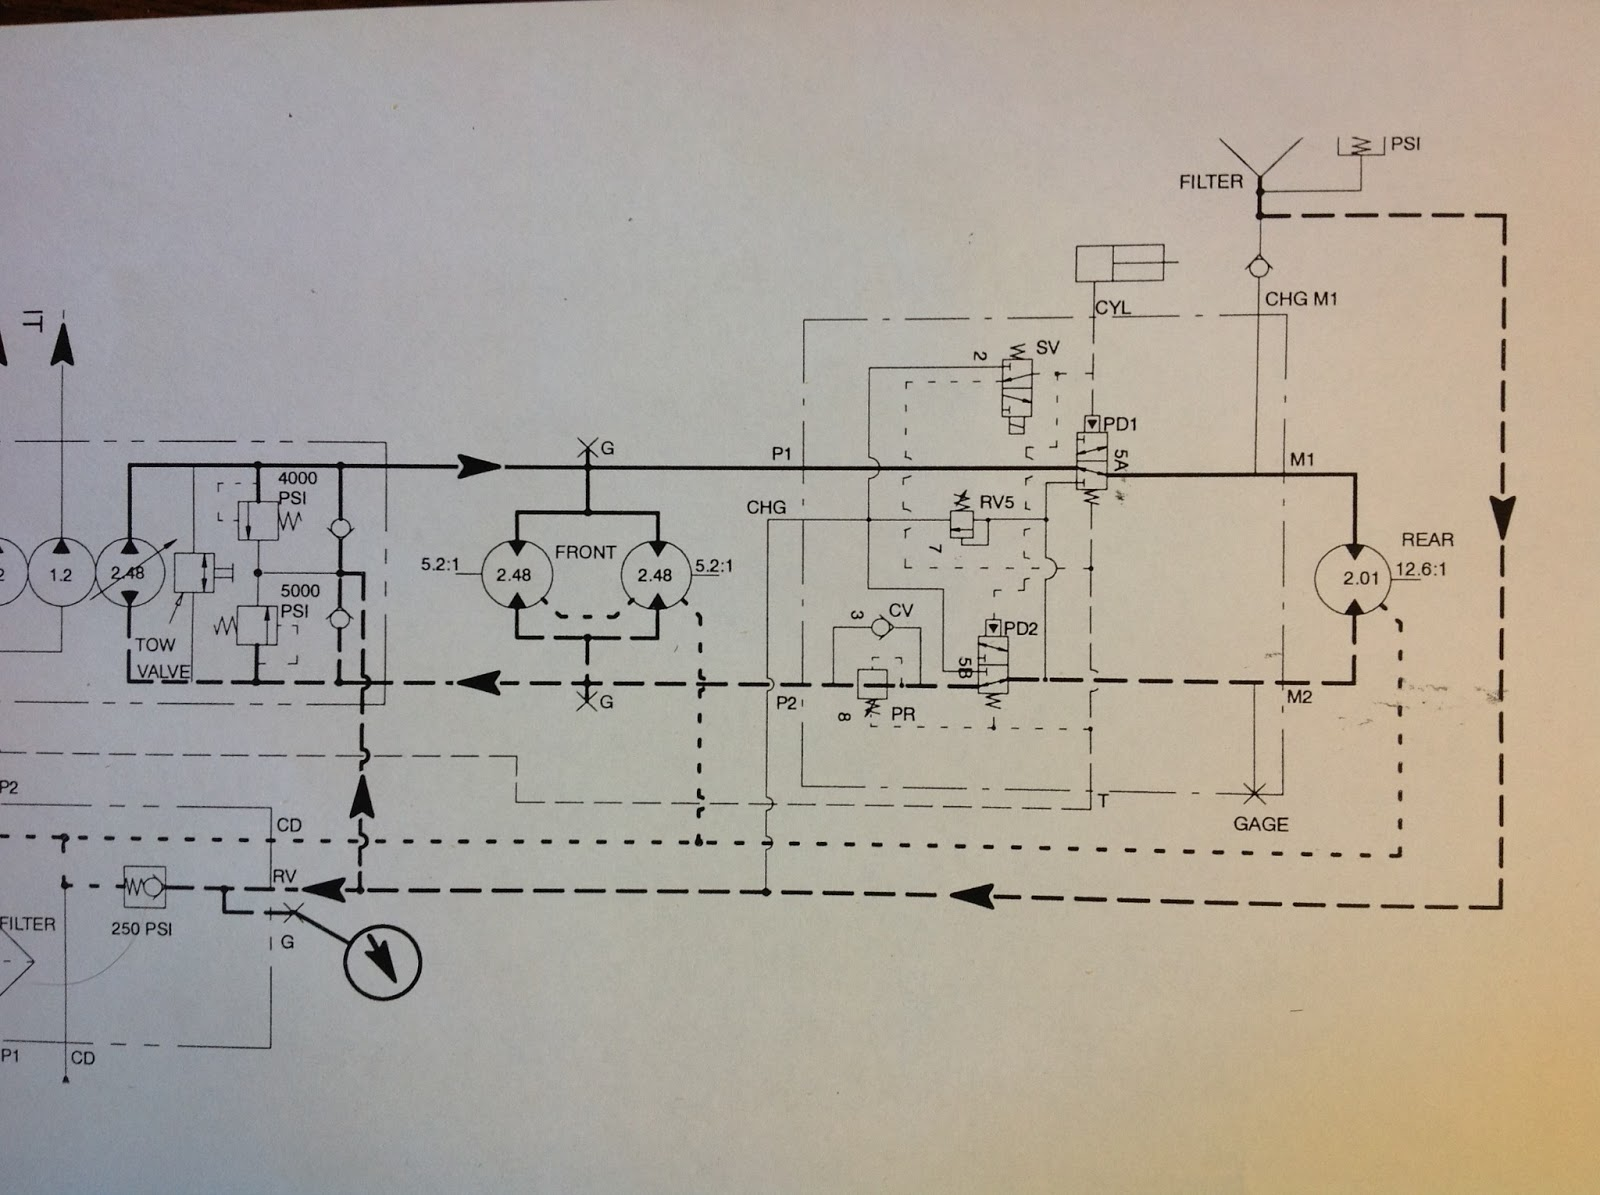 Toro 3150 Wiring Diagram Schematic Diagrams Greensmaster Electrical Simple Electronic Simplicity Tractor